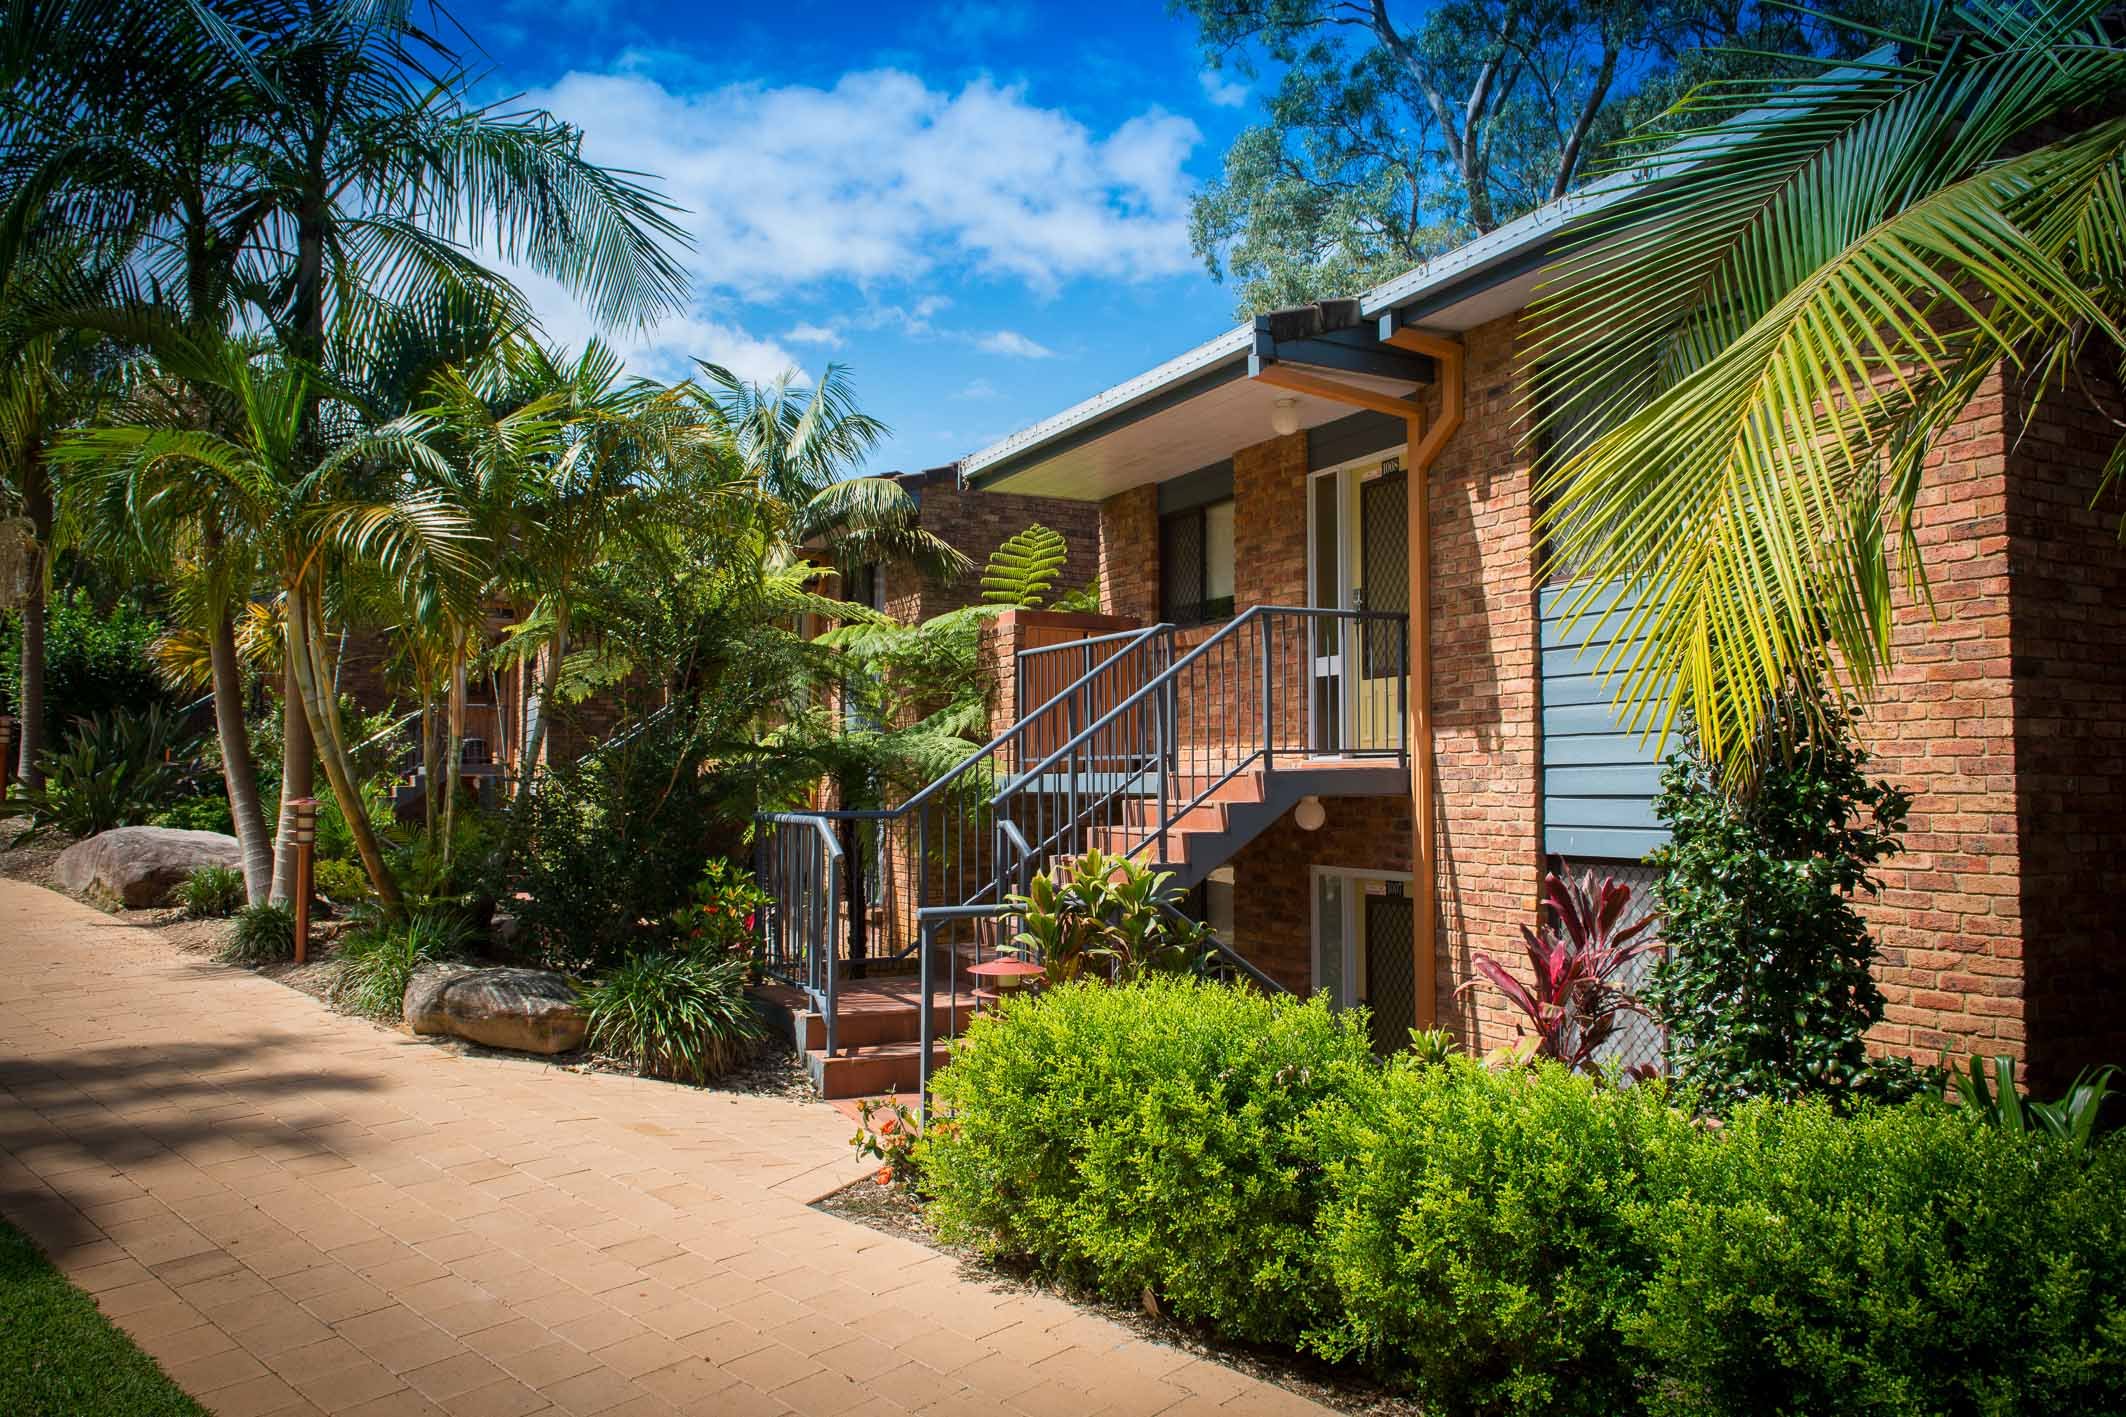 Boambee Bay Resort - Australia Accommodation